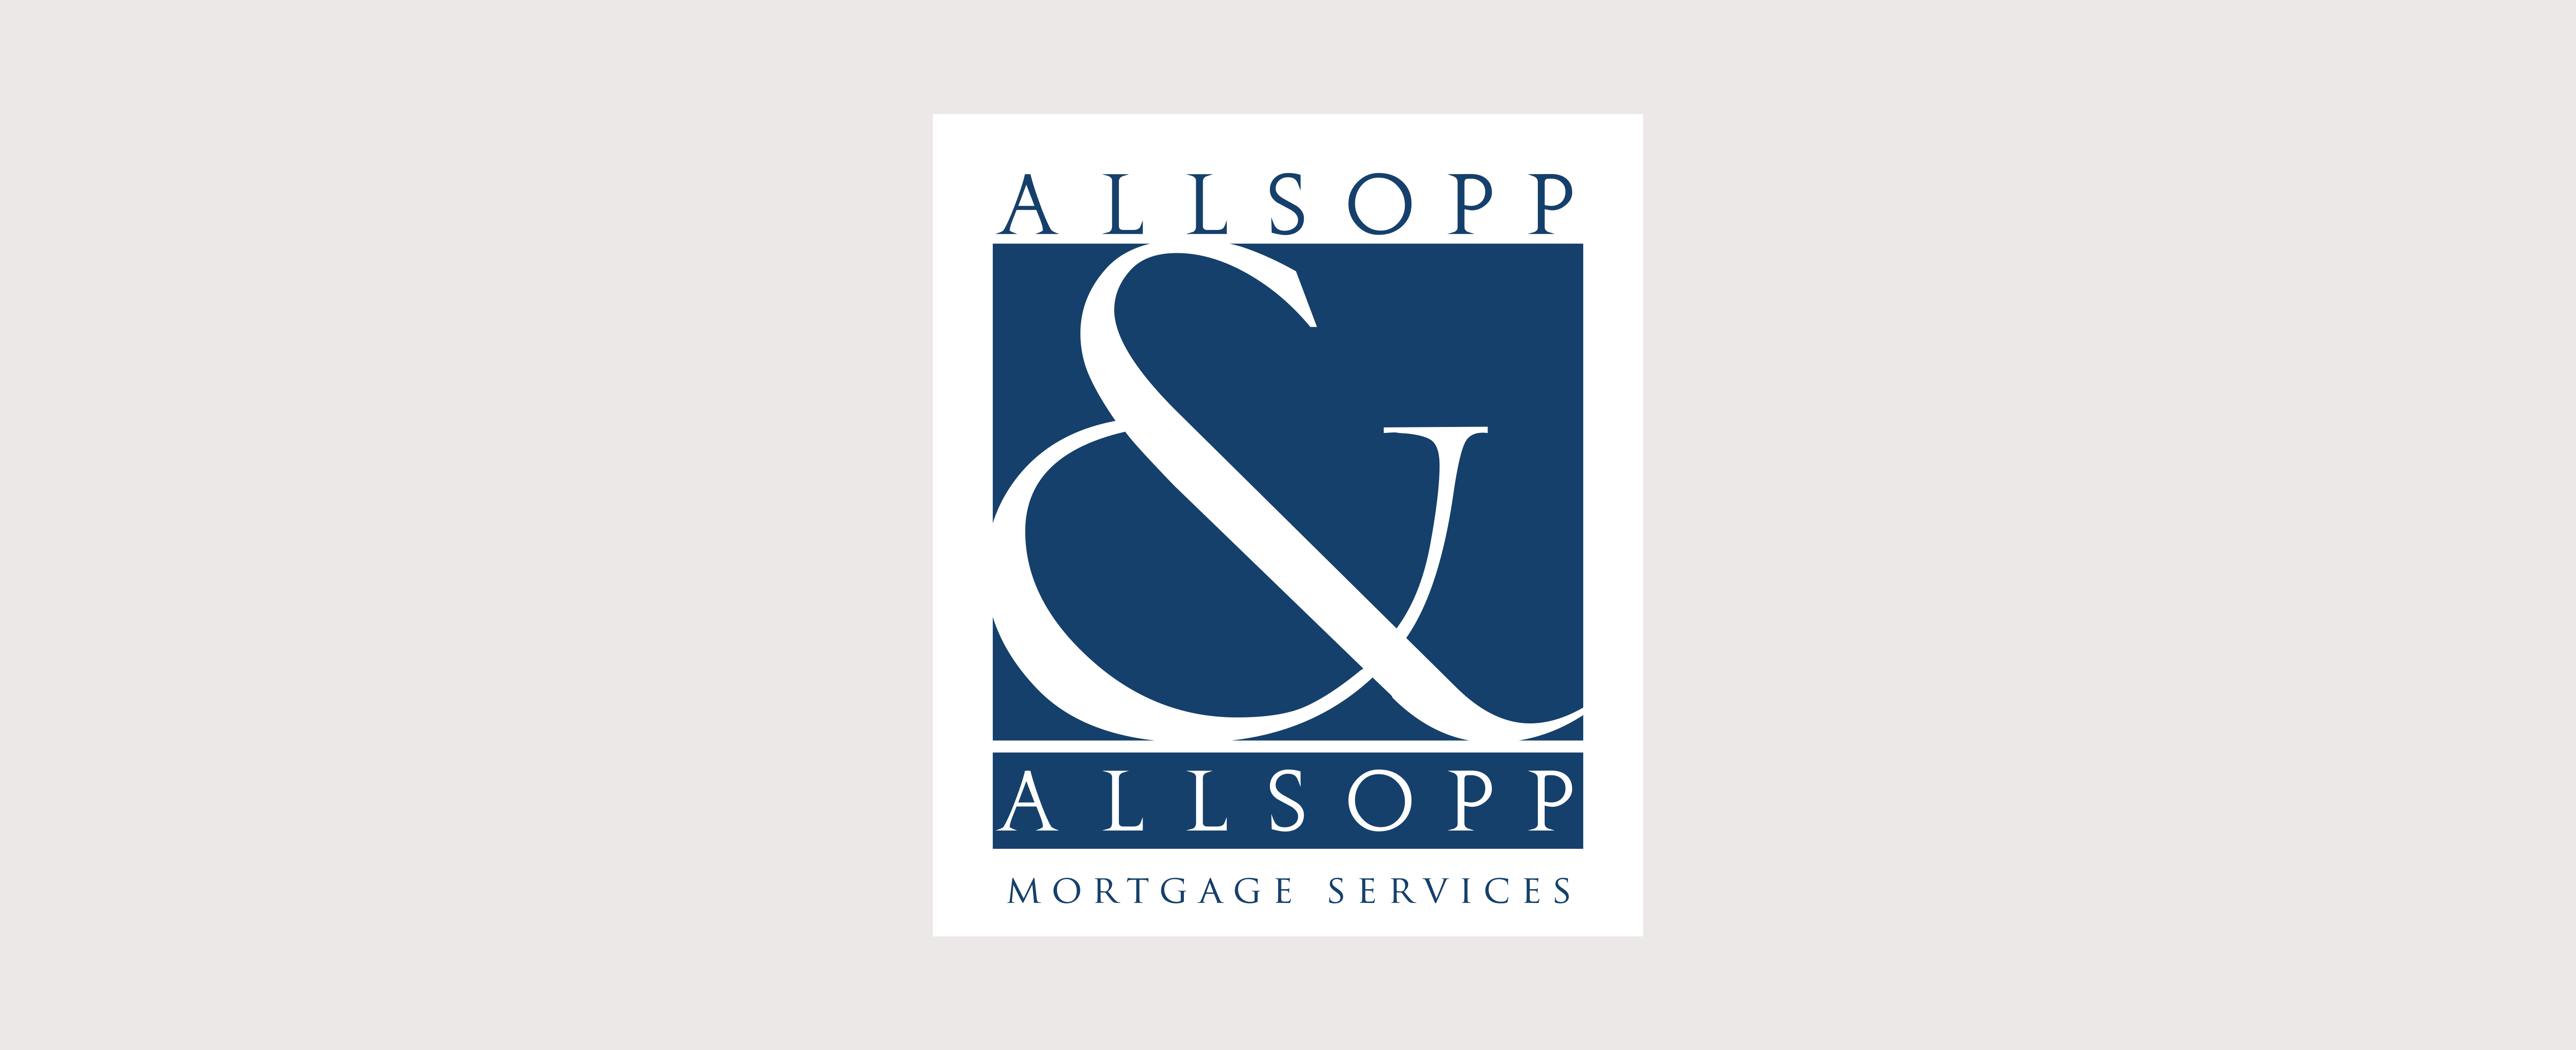 Allsopp mortgage